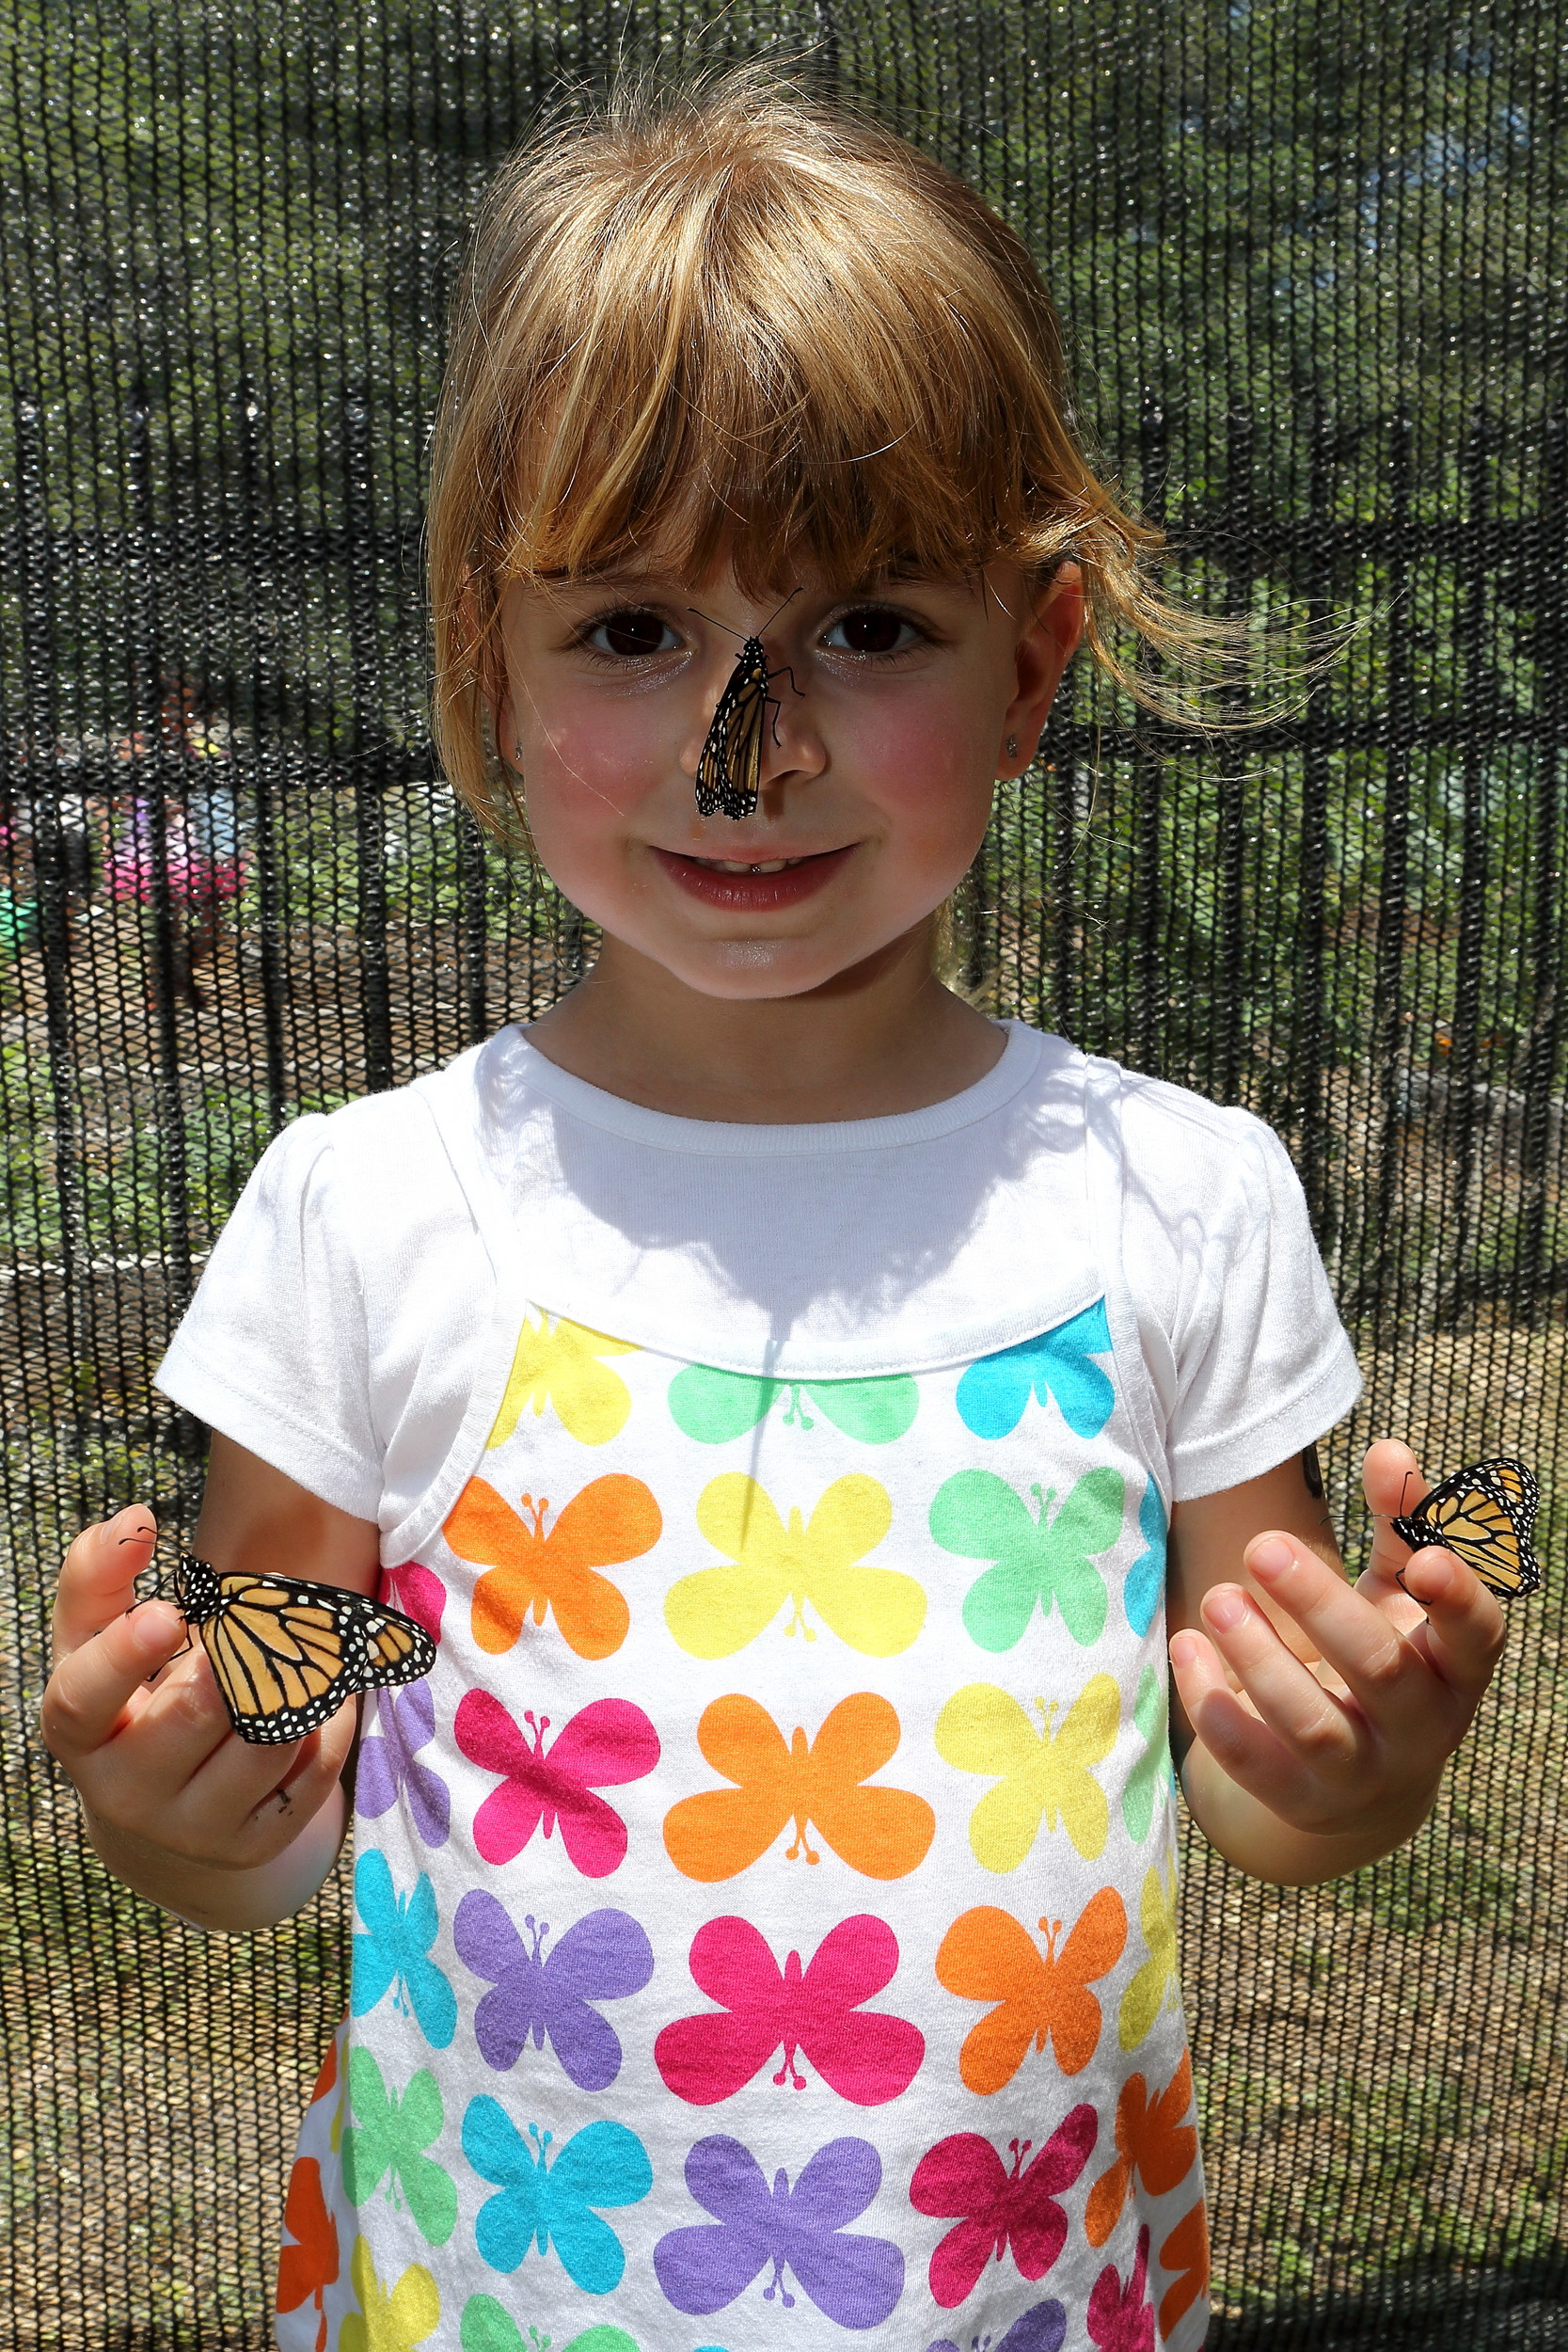 The 13th annual Butterfly Festival is a pretty fun treat for the whole family – featuring crafts, food and drink, live music, a butterfly release and kids' activities – from 10 a.m.-4 p.m. on April 27 at Tree Hill Nature Center, on Lone Star Road in Arlington.